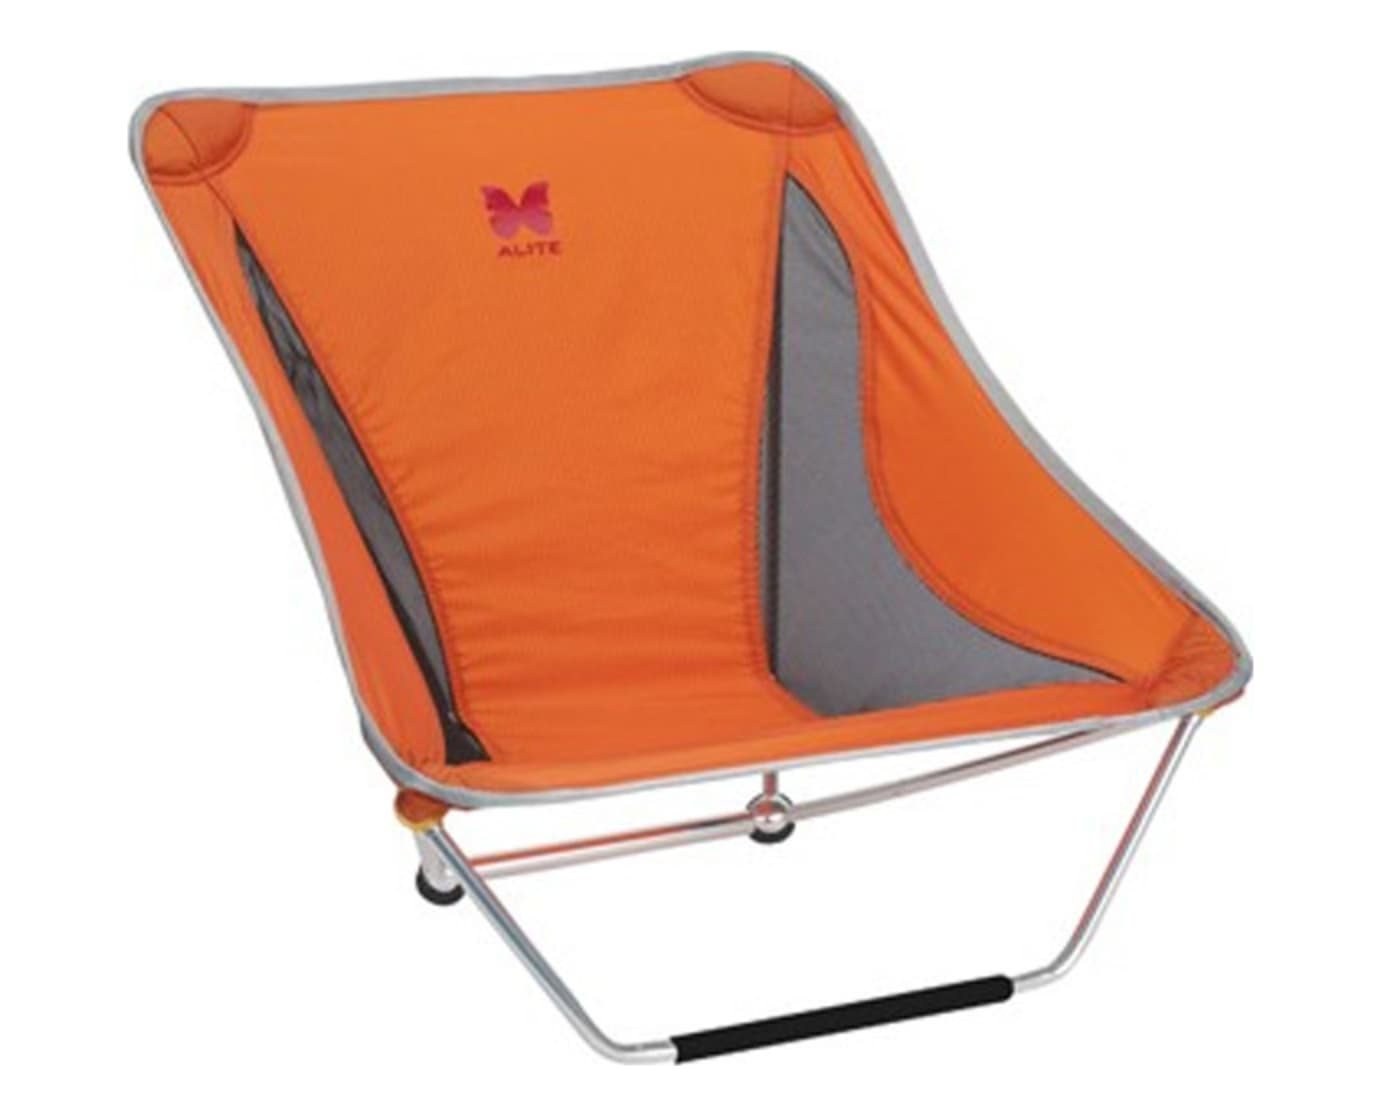 Alite Monarch Chair Alite Mayfly Camping Chair Jupiter Orange